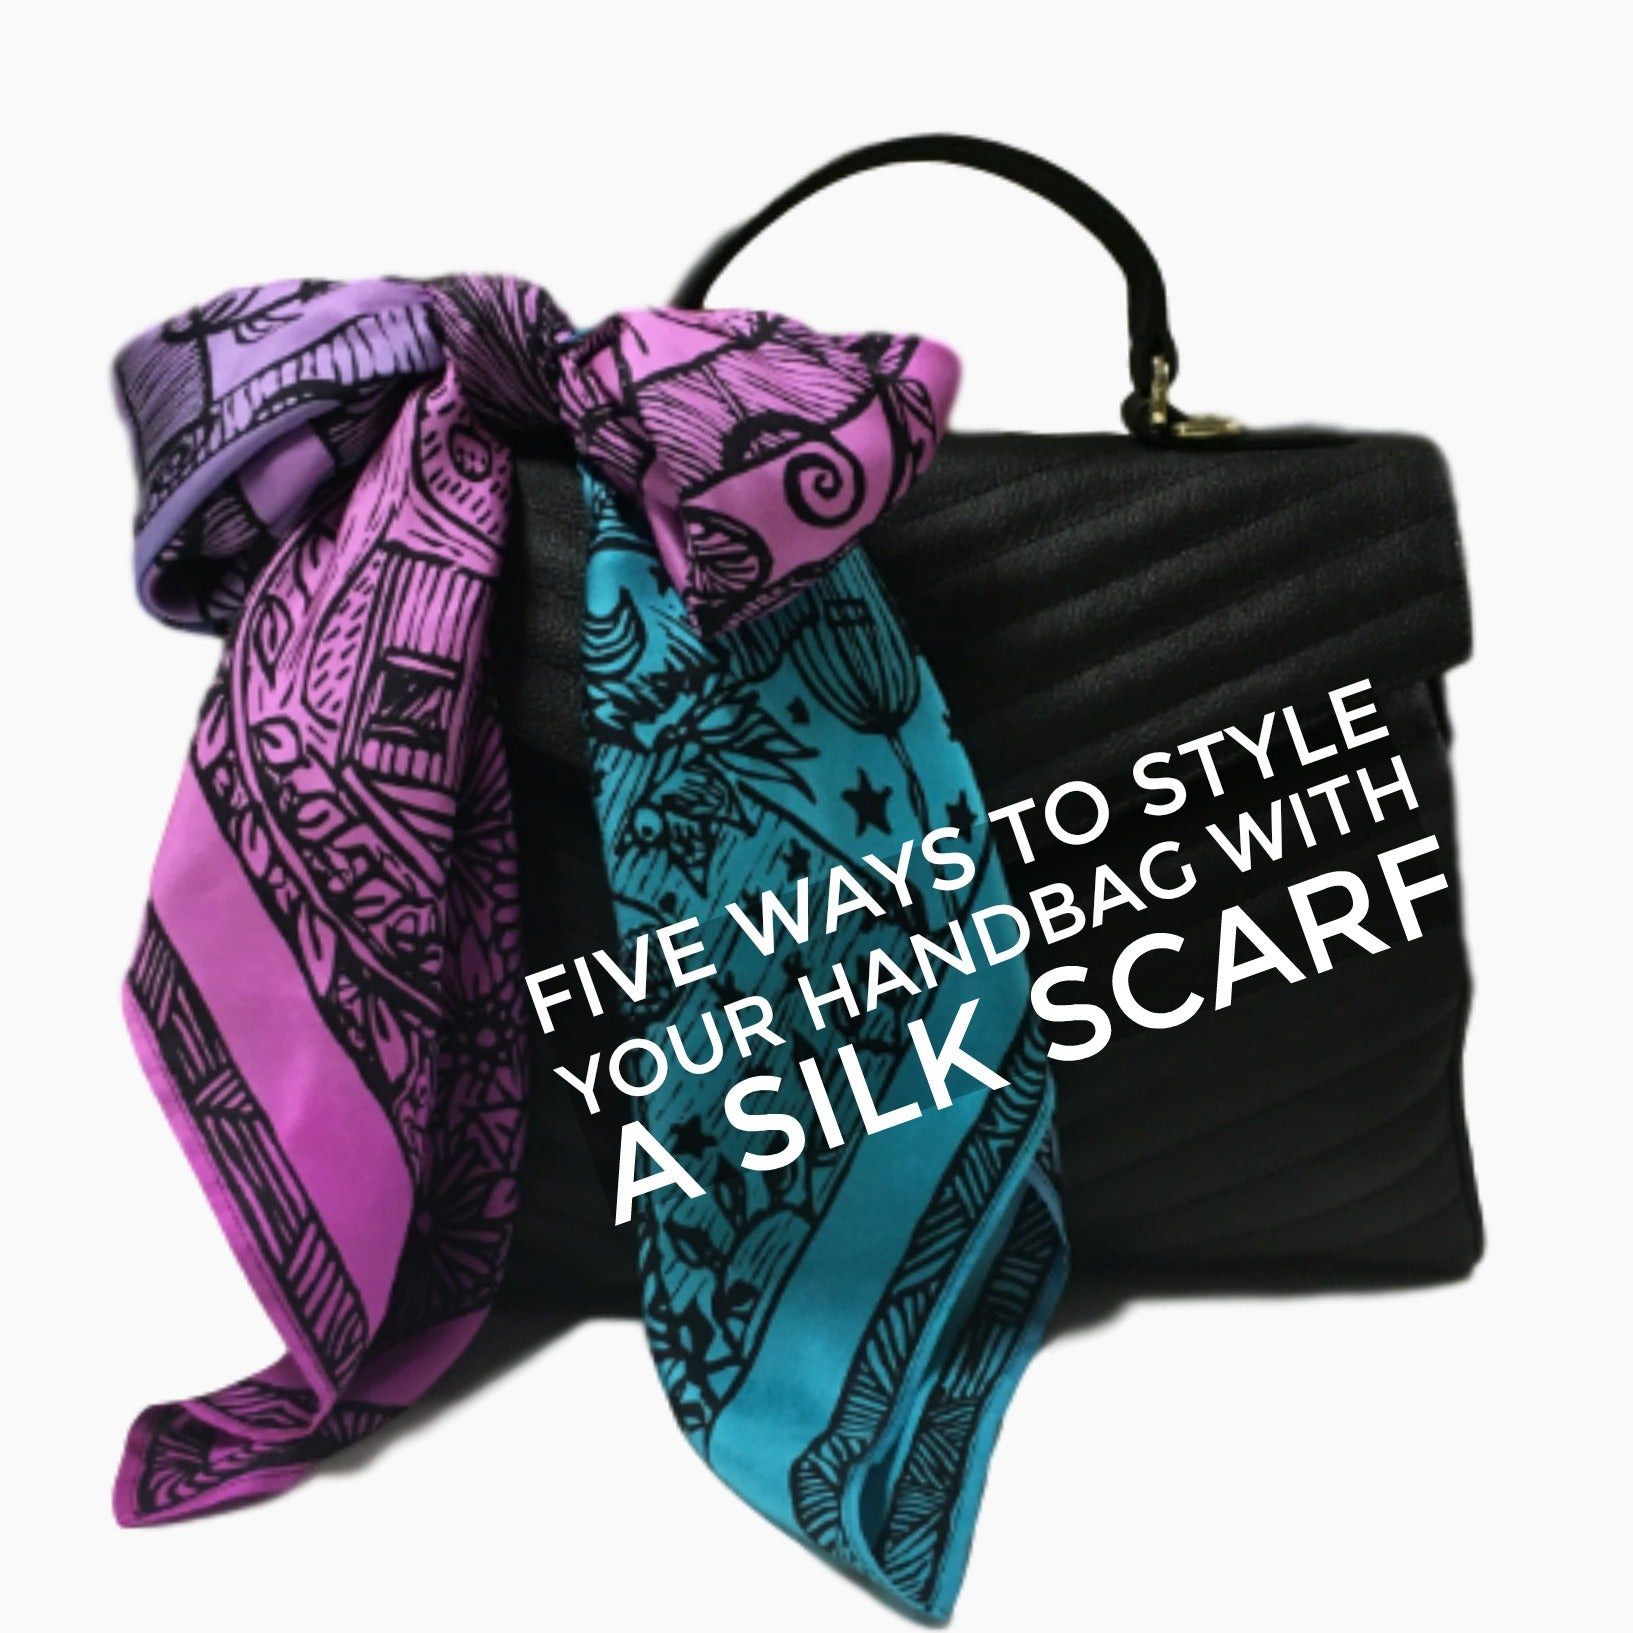 How To Style Your Handbag With A Silk Scarf - 5 Ways!